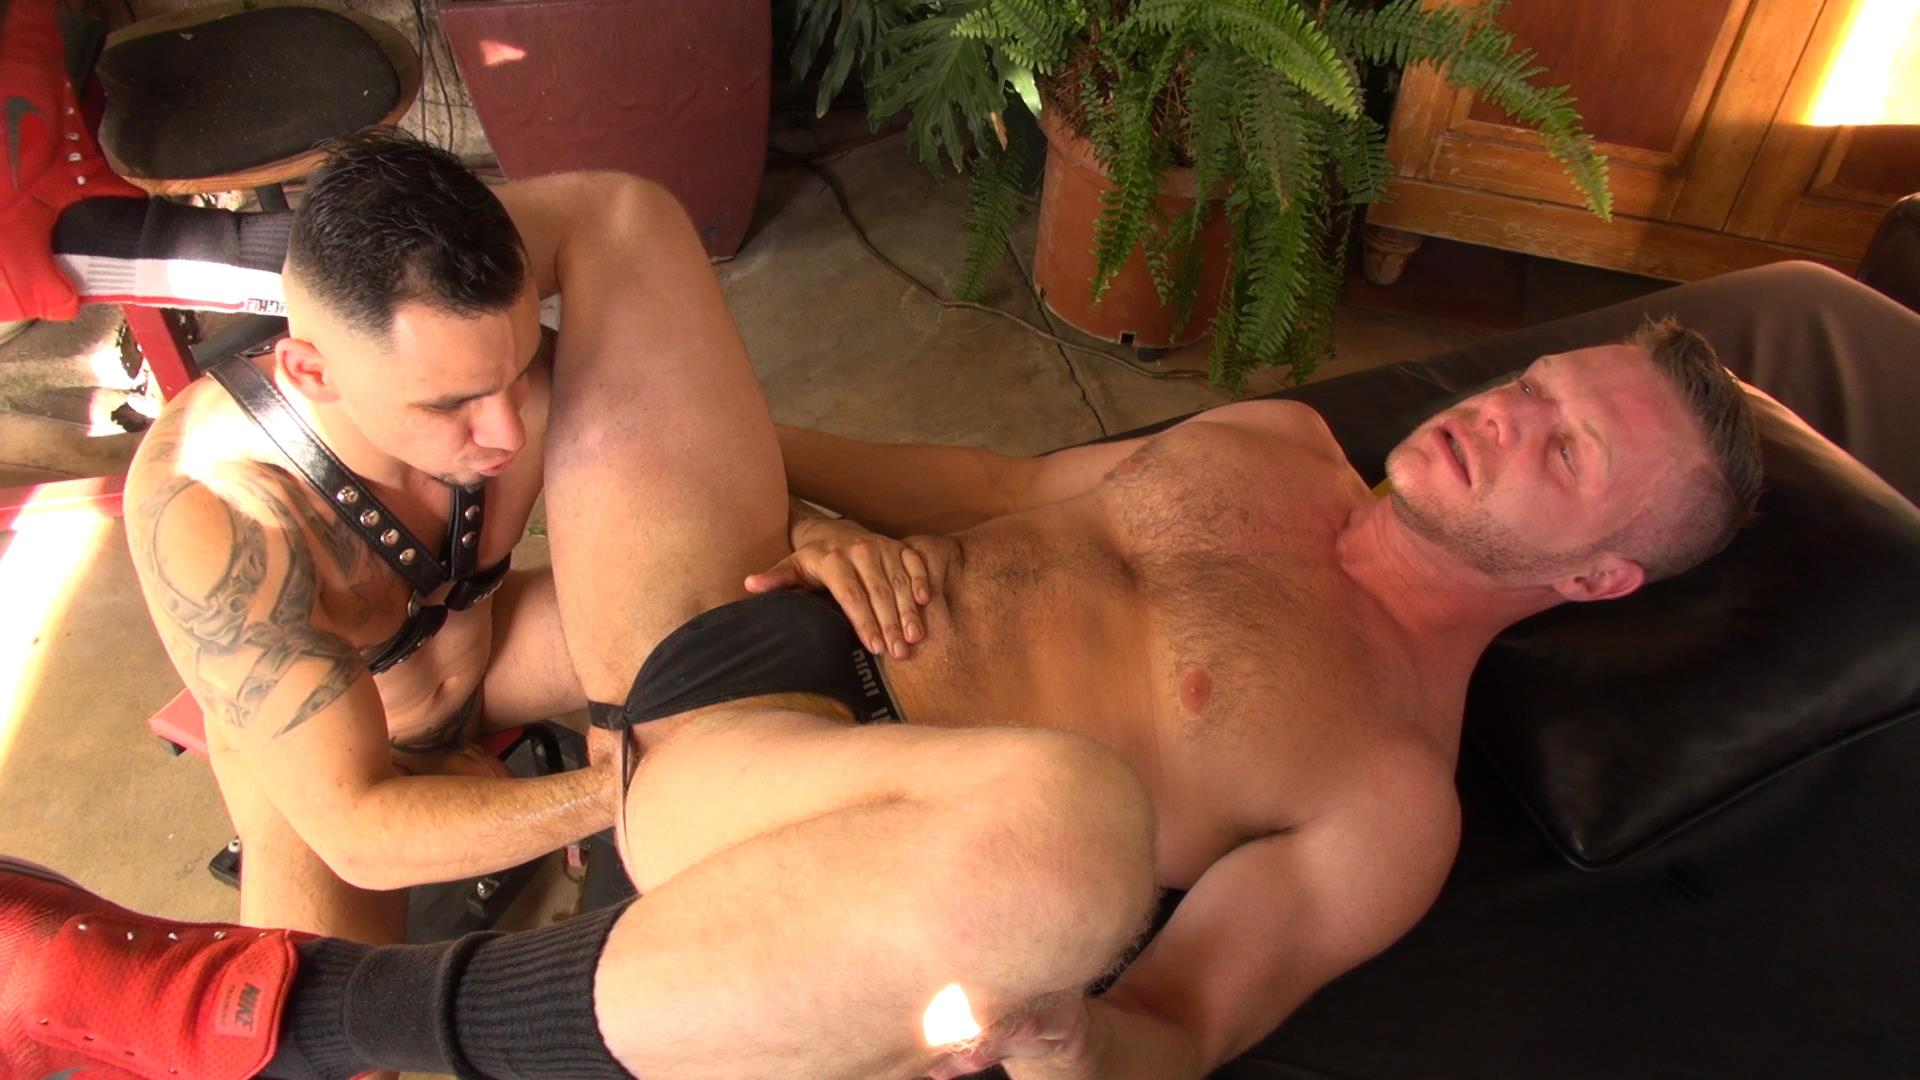 Raw-and-Rough-Brian-Bonds-and-Diego-Tovar-Bareback-Sex-and-Fisting-10 Brian Bonds Gets Fisted!